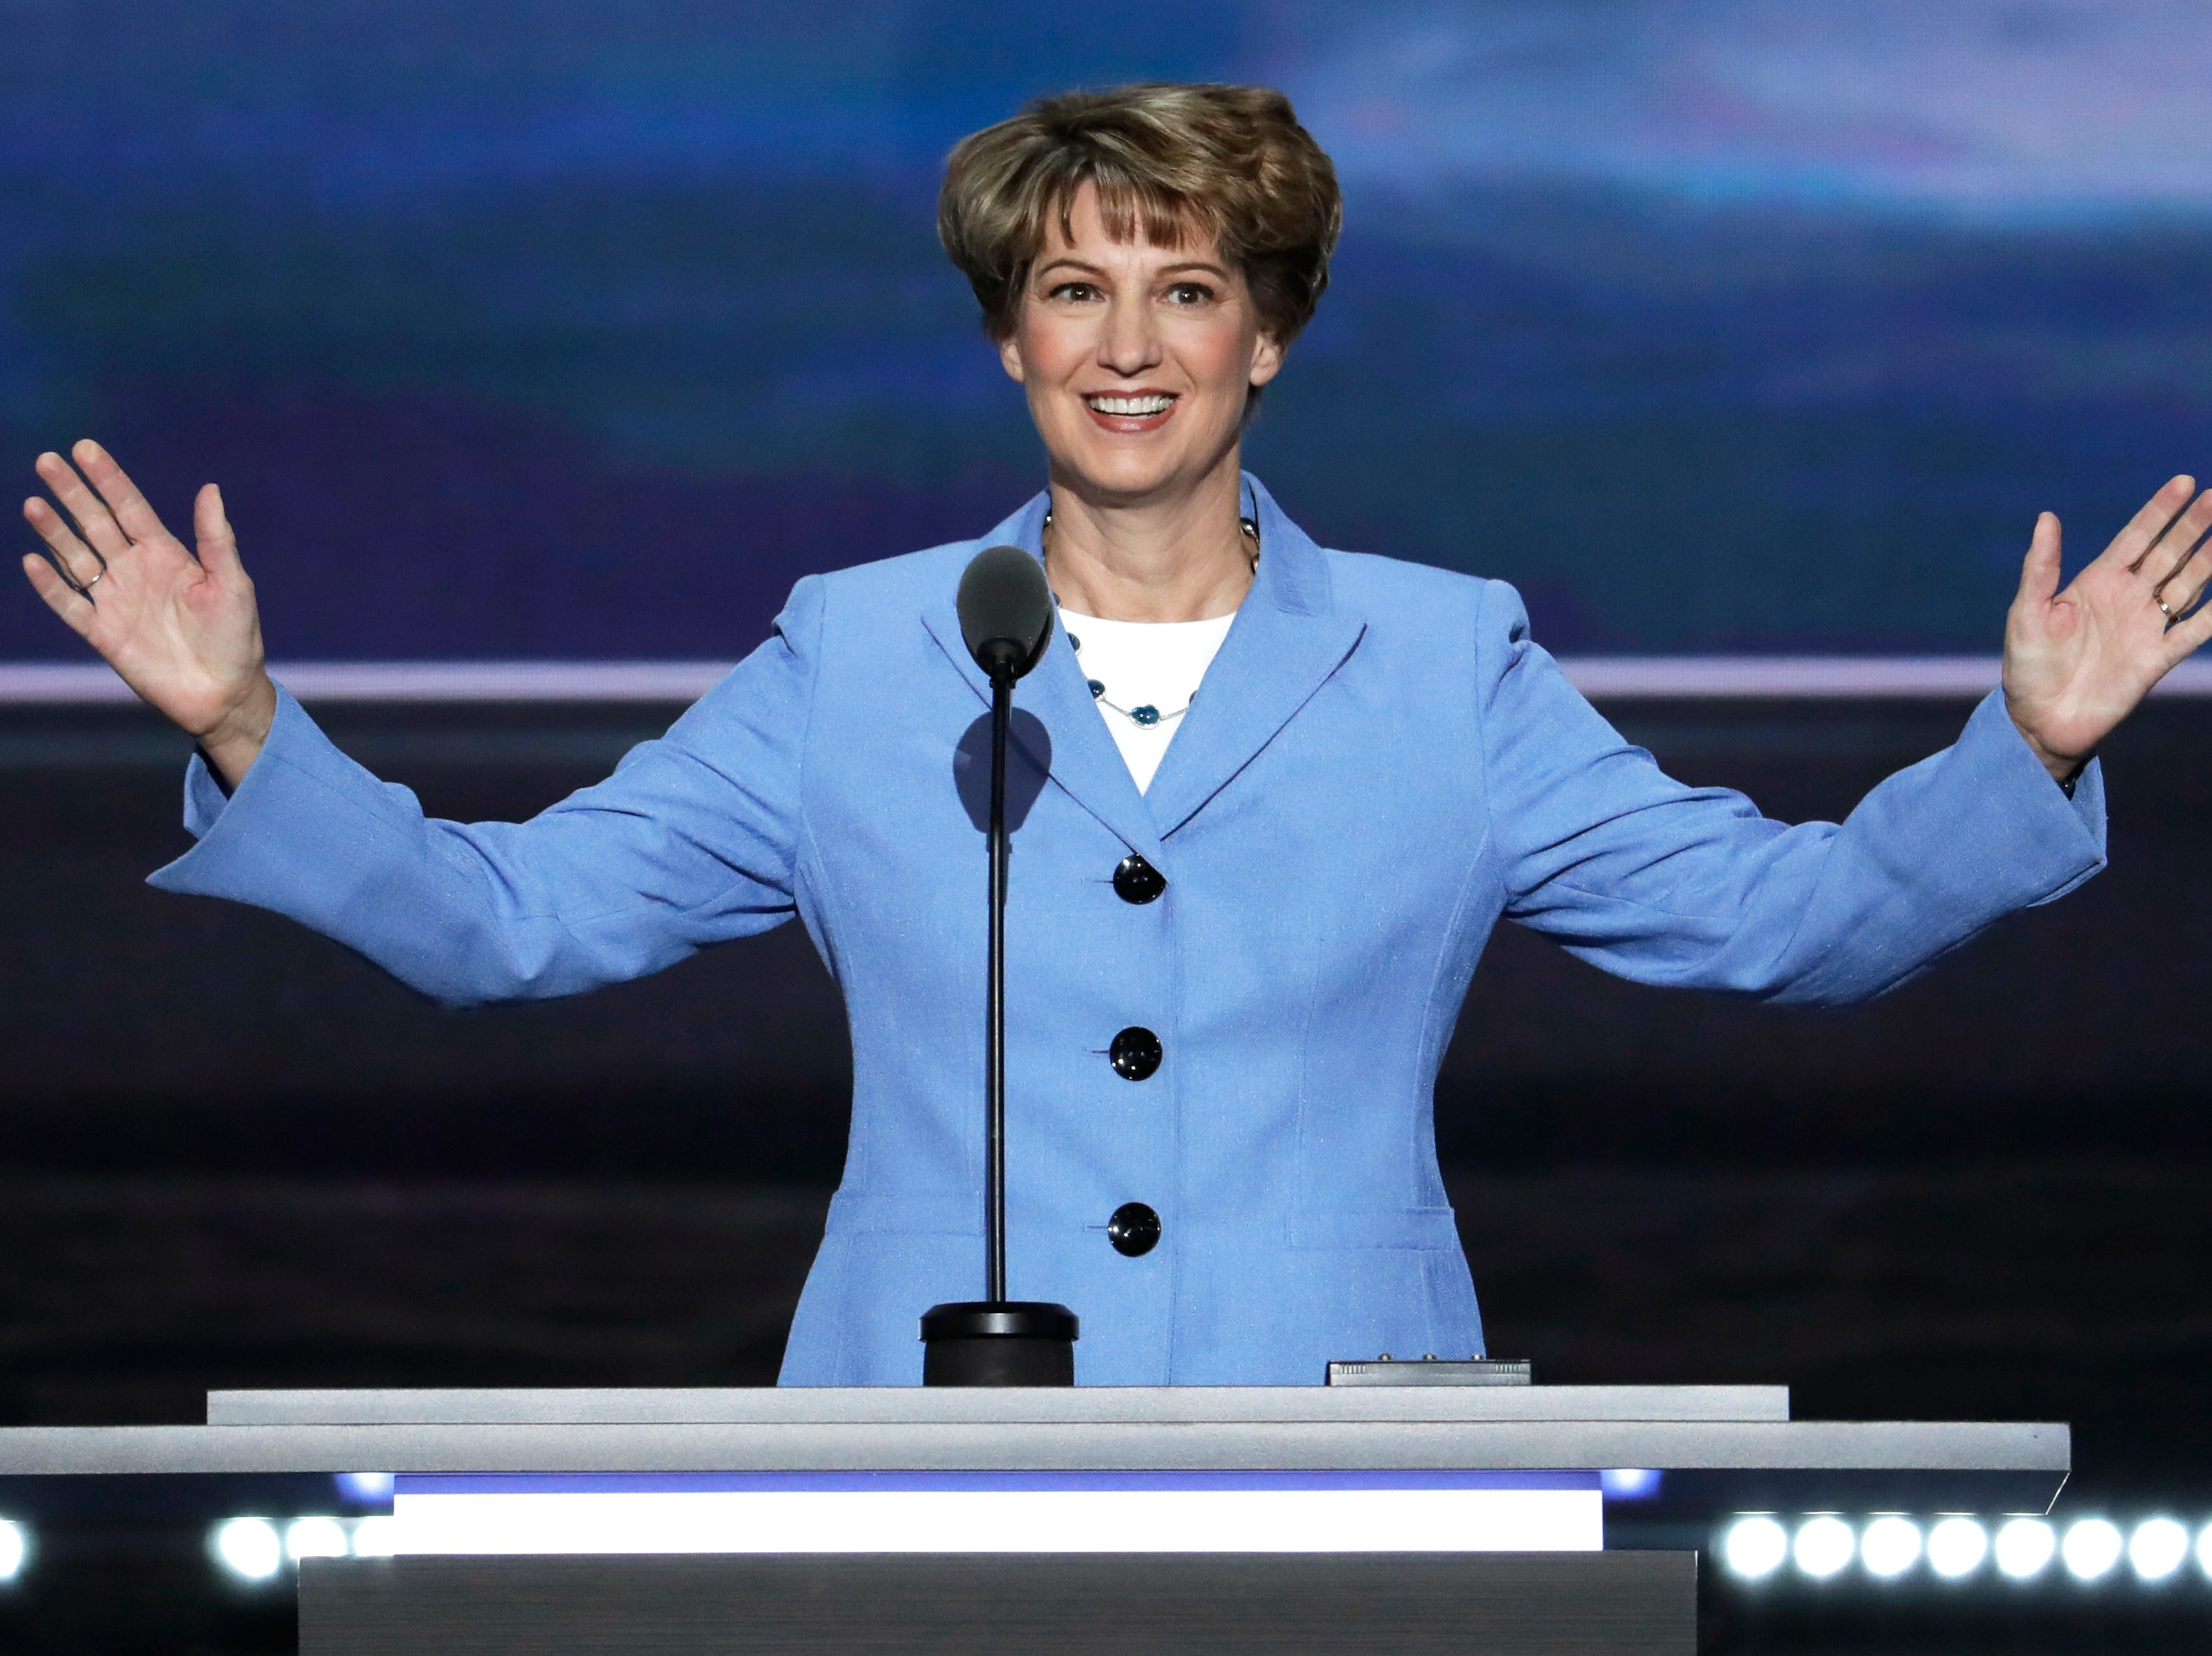 Astronaut Eileen Collins and Elmira native speaks during the third day of the Republican National Convention in Cleveland, Wednesday, July 20, 2016.